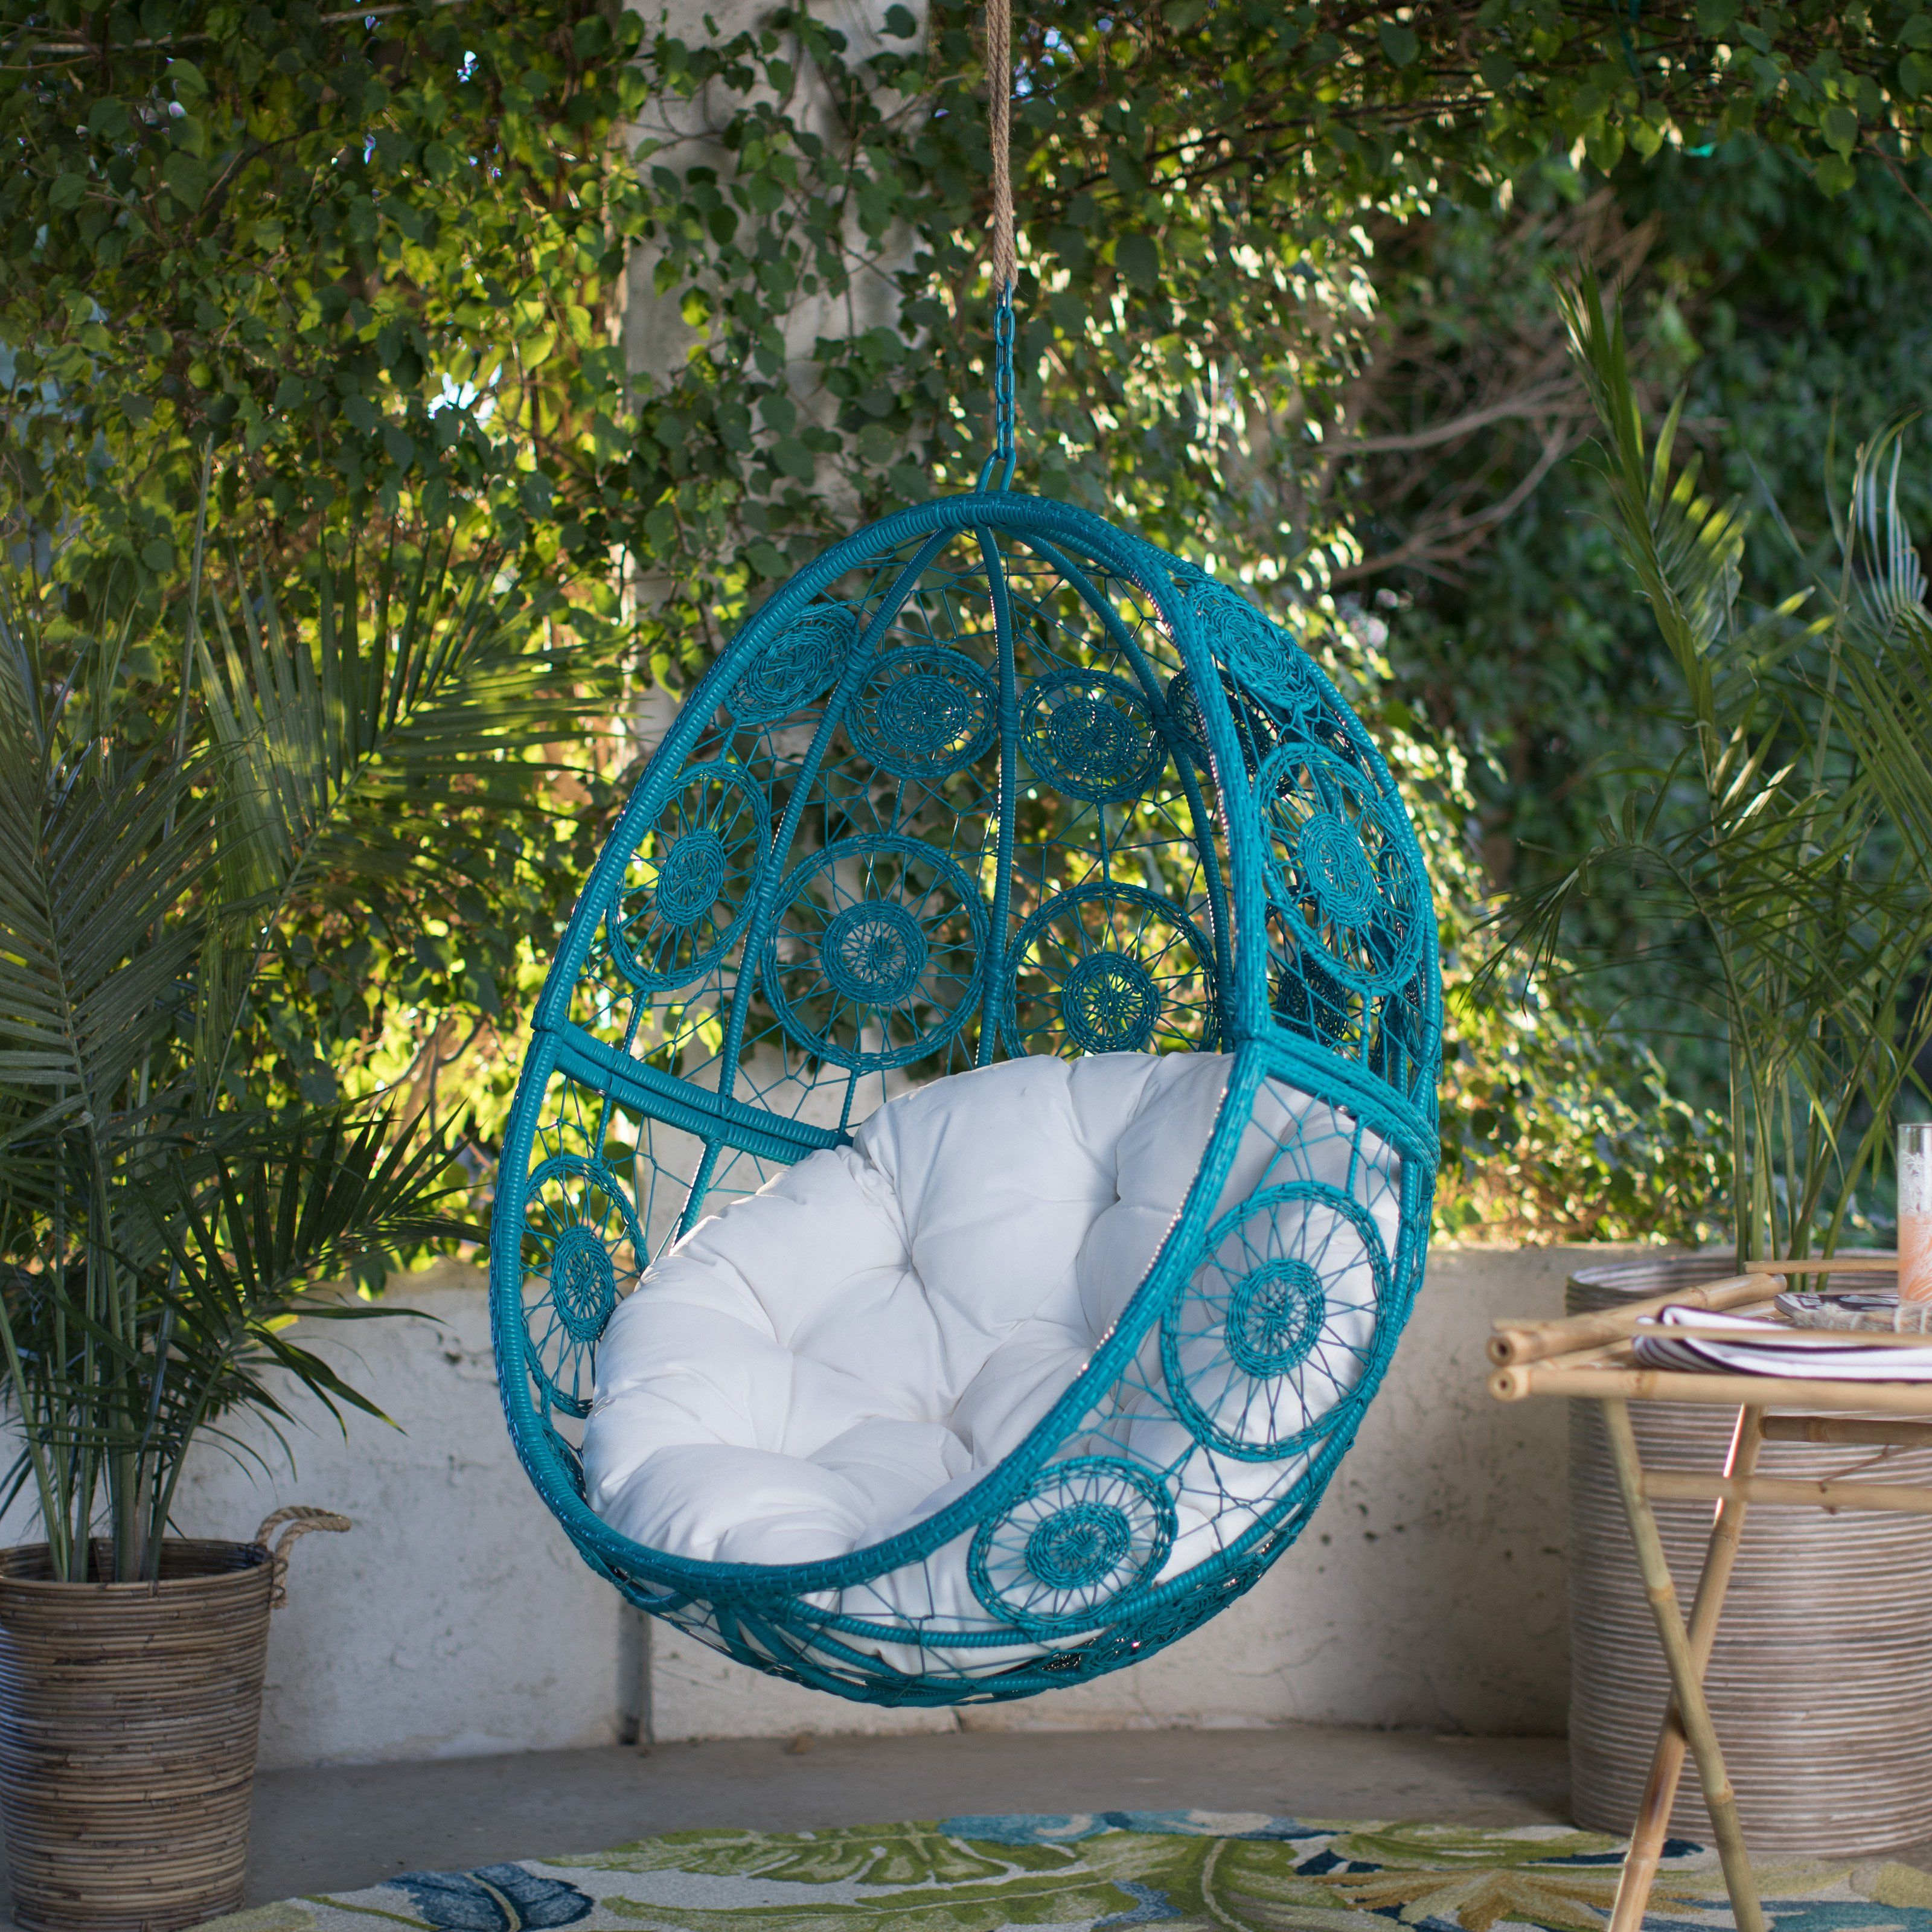 Island Bay Bloom Resin Wicker Hanging Egg Chair with